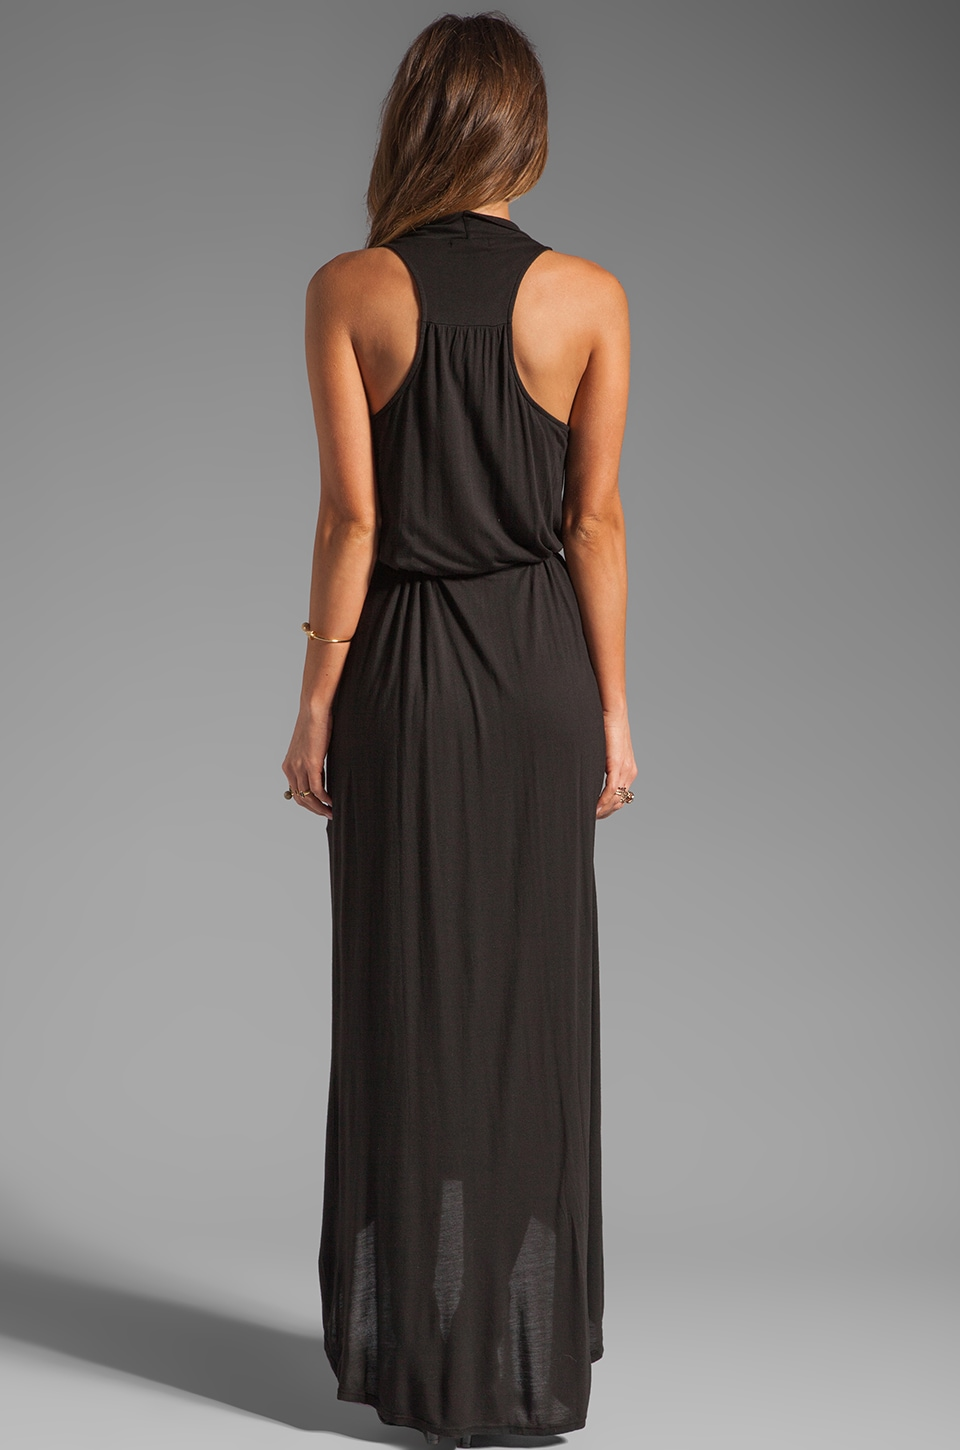 LA Made Draped Collar Maxi Dress in Black